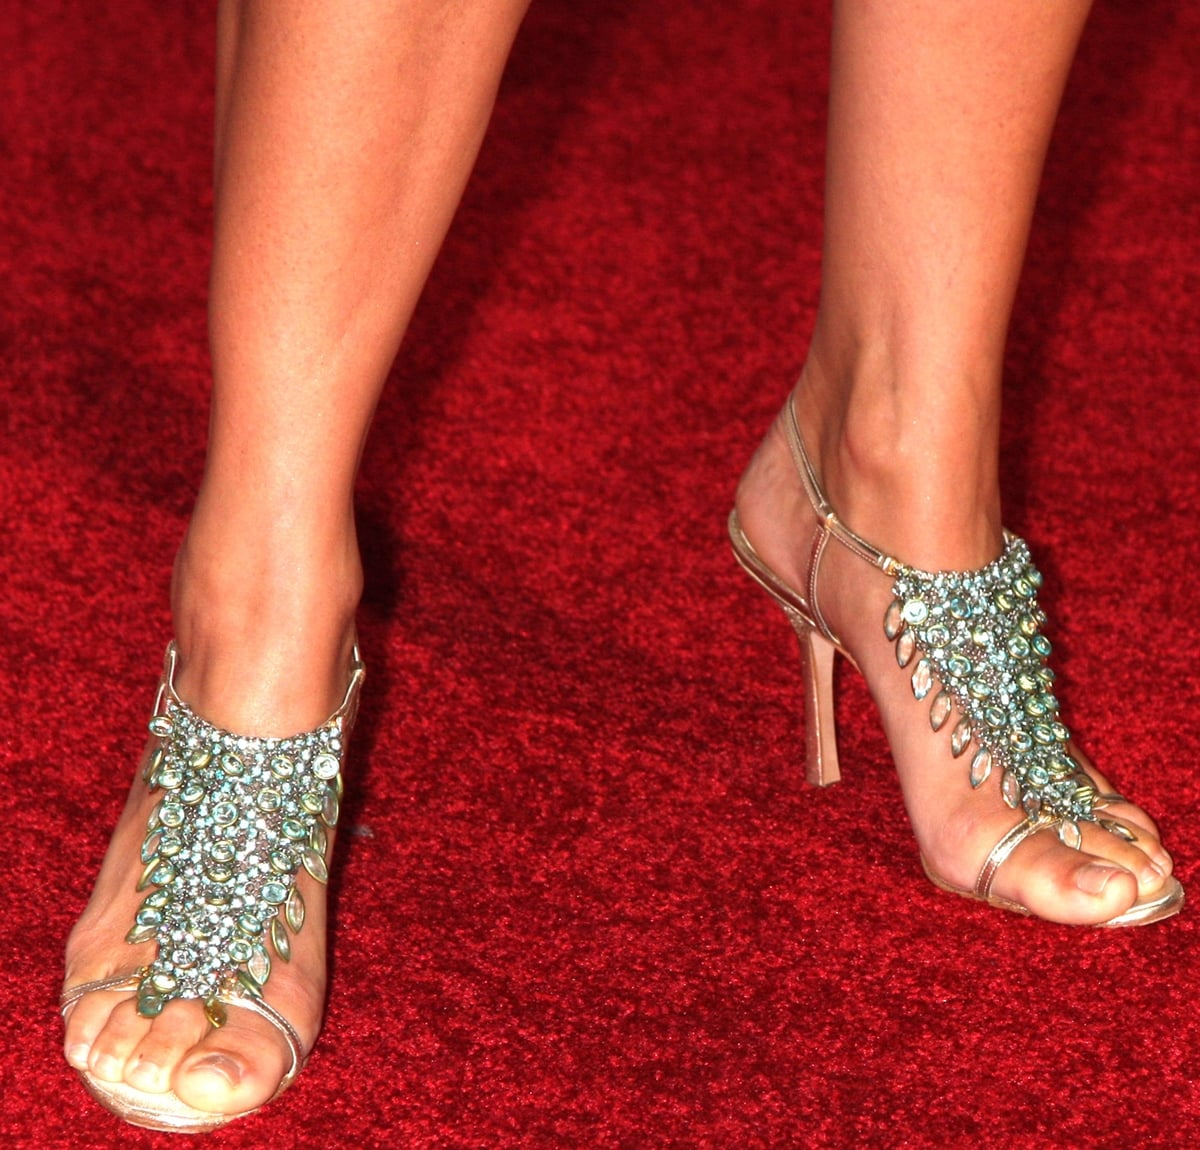 Lori Loughlin shows off her size 8 (US) feet in crystal-embellished high heels